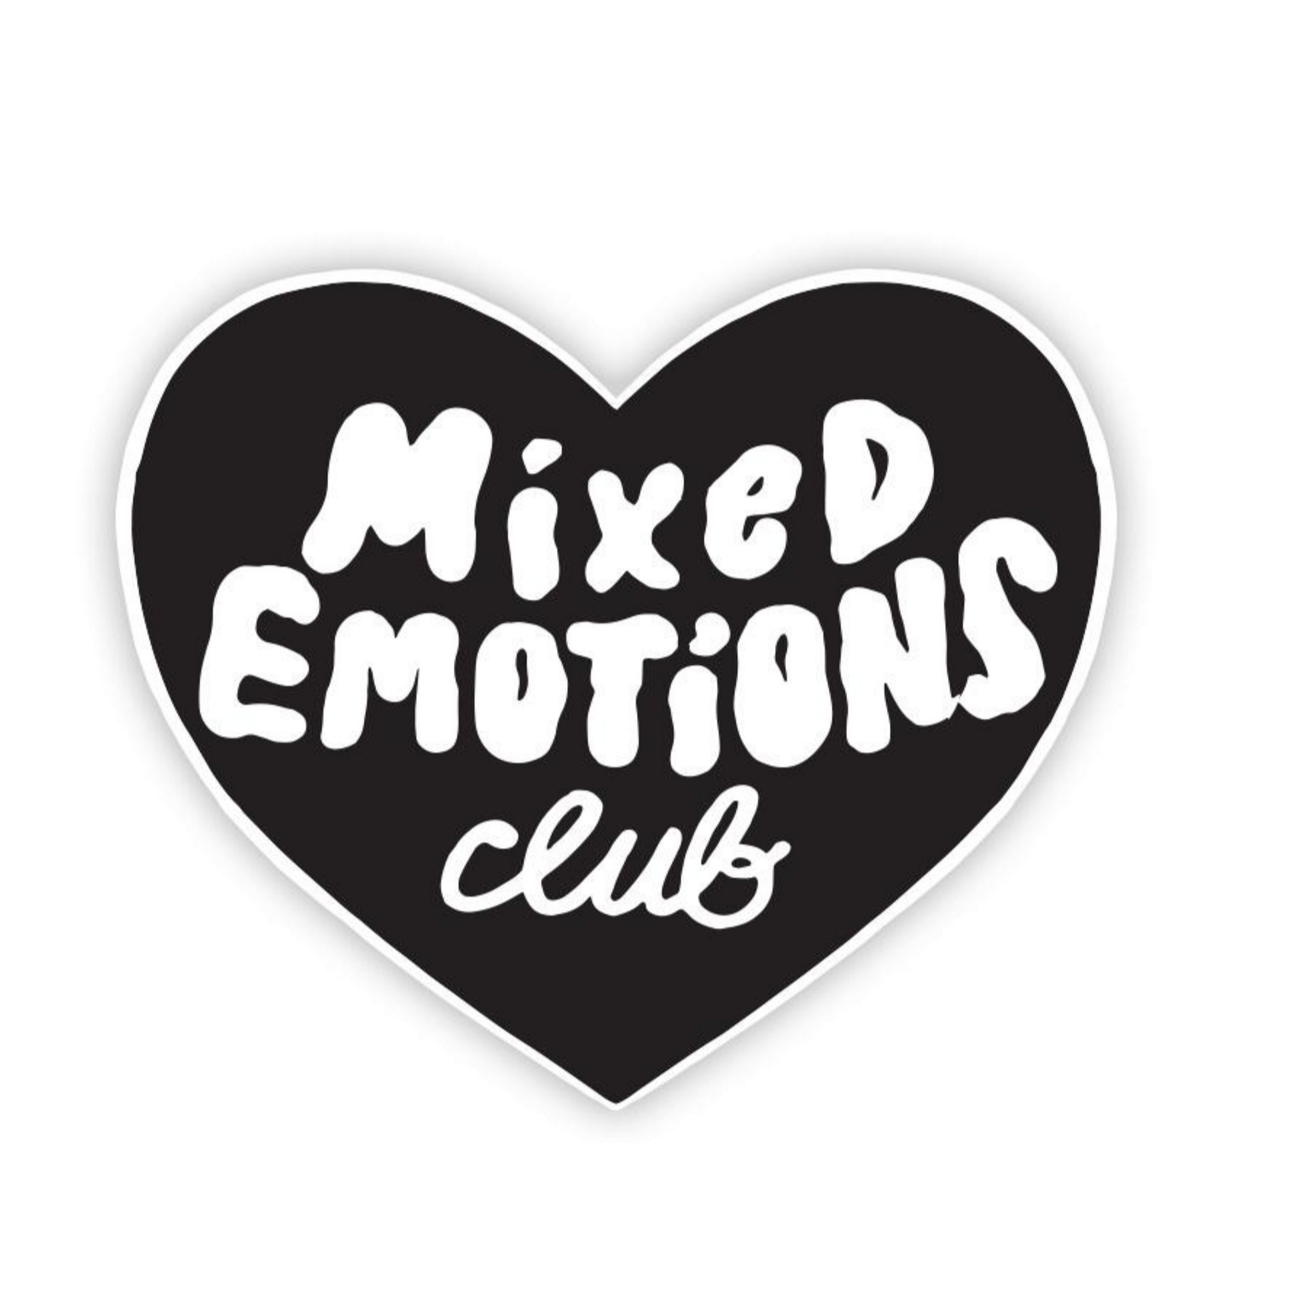 Tattly Mixed Emotions Club Tattoo on DLK | designlifekids.com